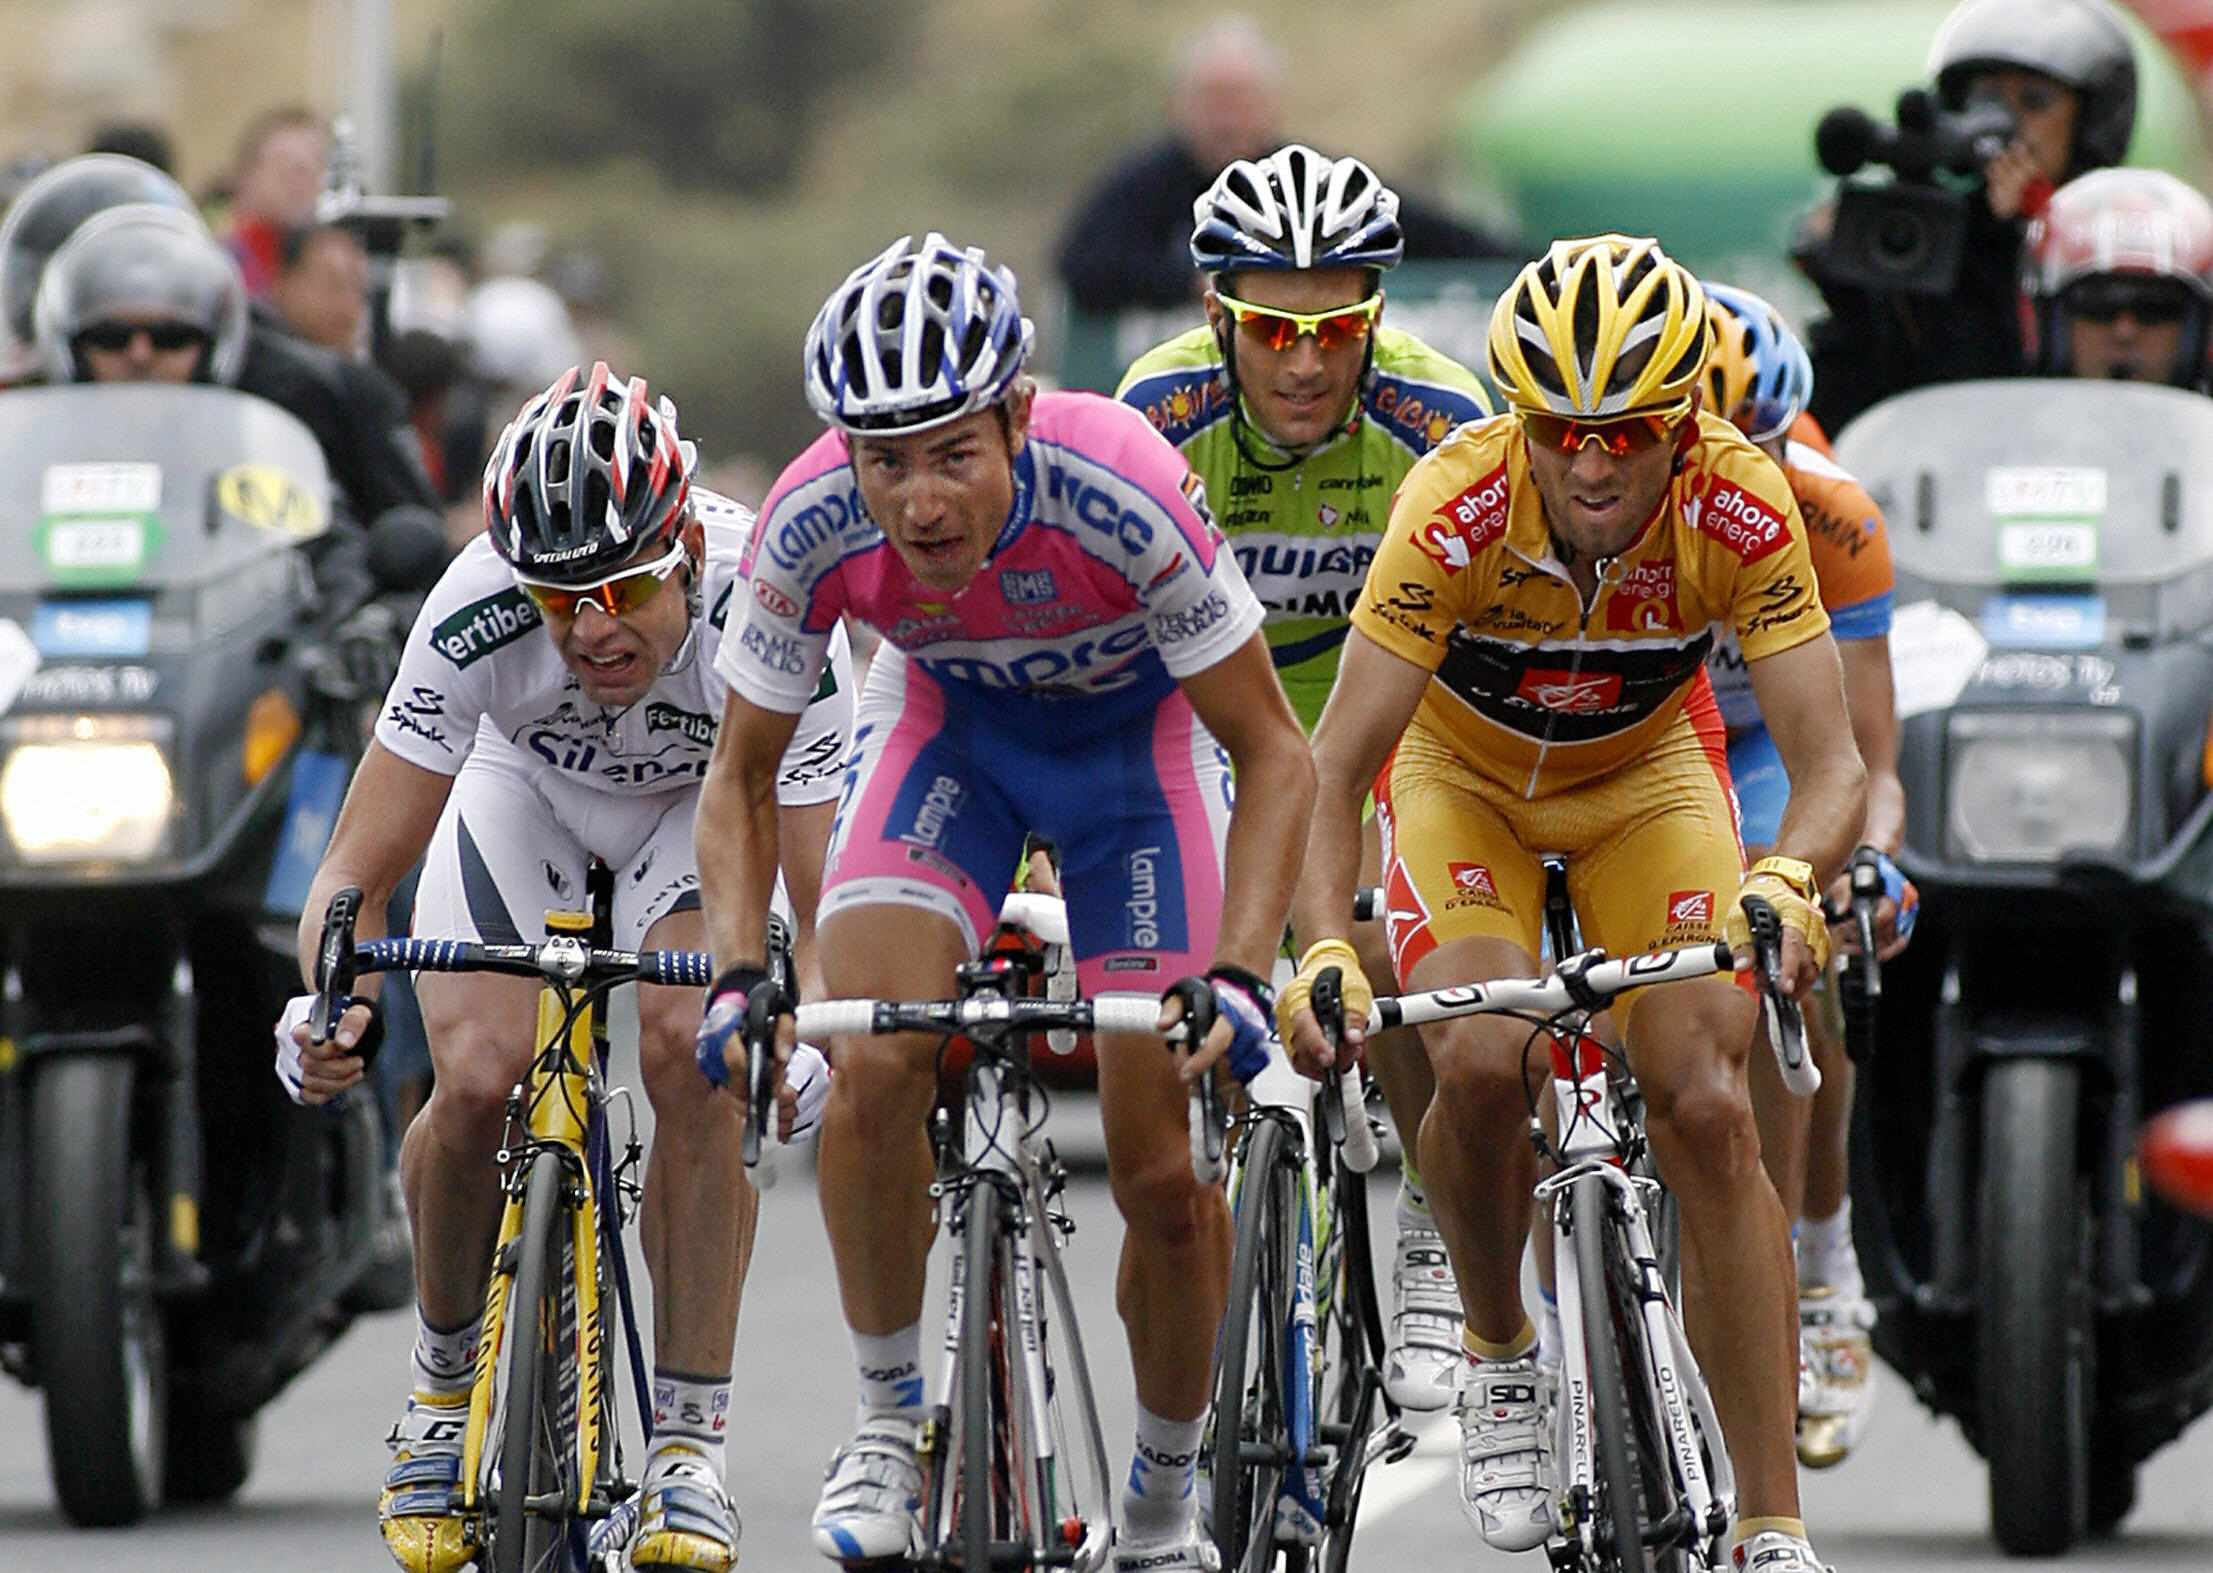 World championships road race favourites Cadel Evans (L), Damiano Cunego (C) and Alejandro Valverde (R) battle during the 2009 Tour of Spain.